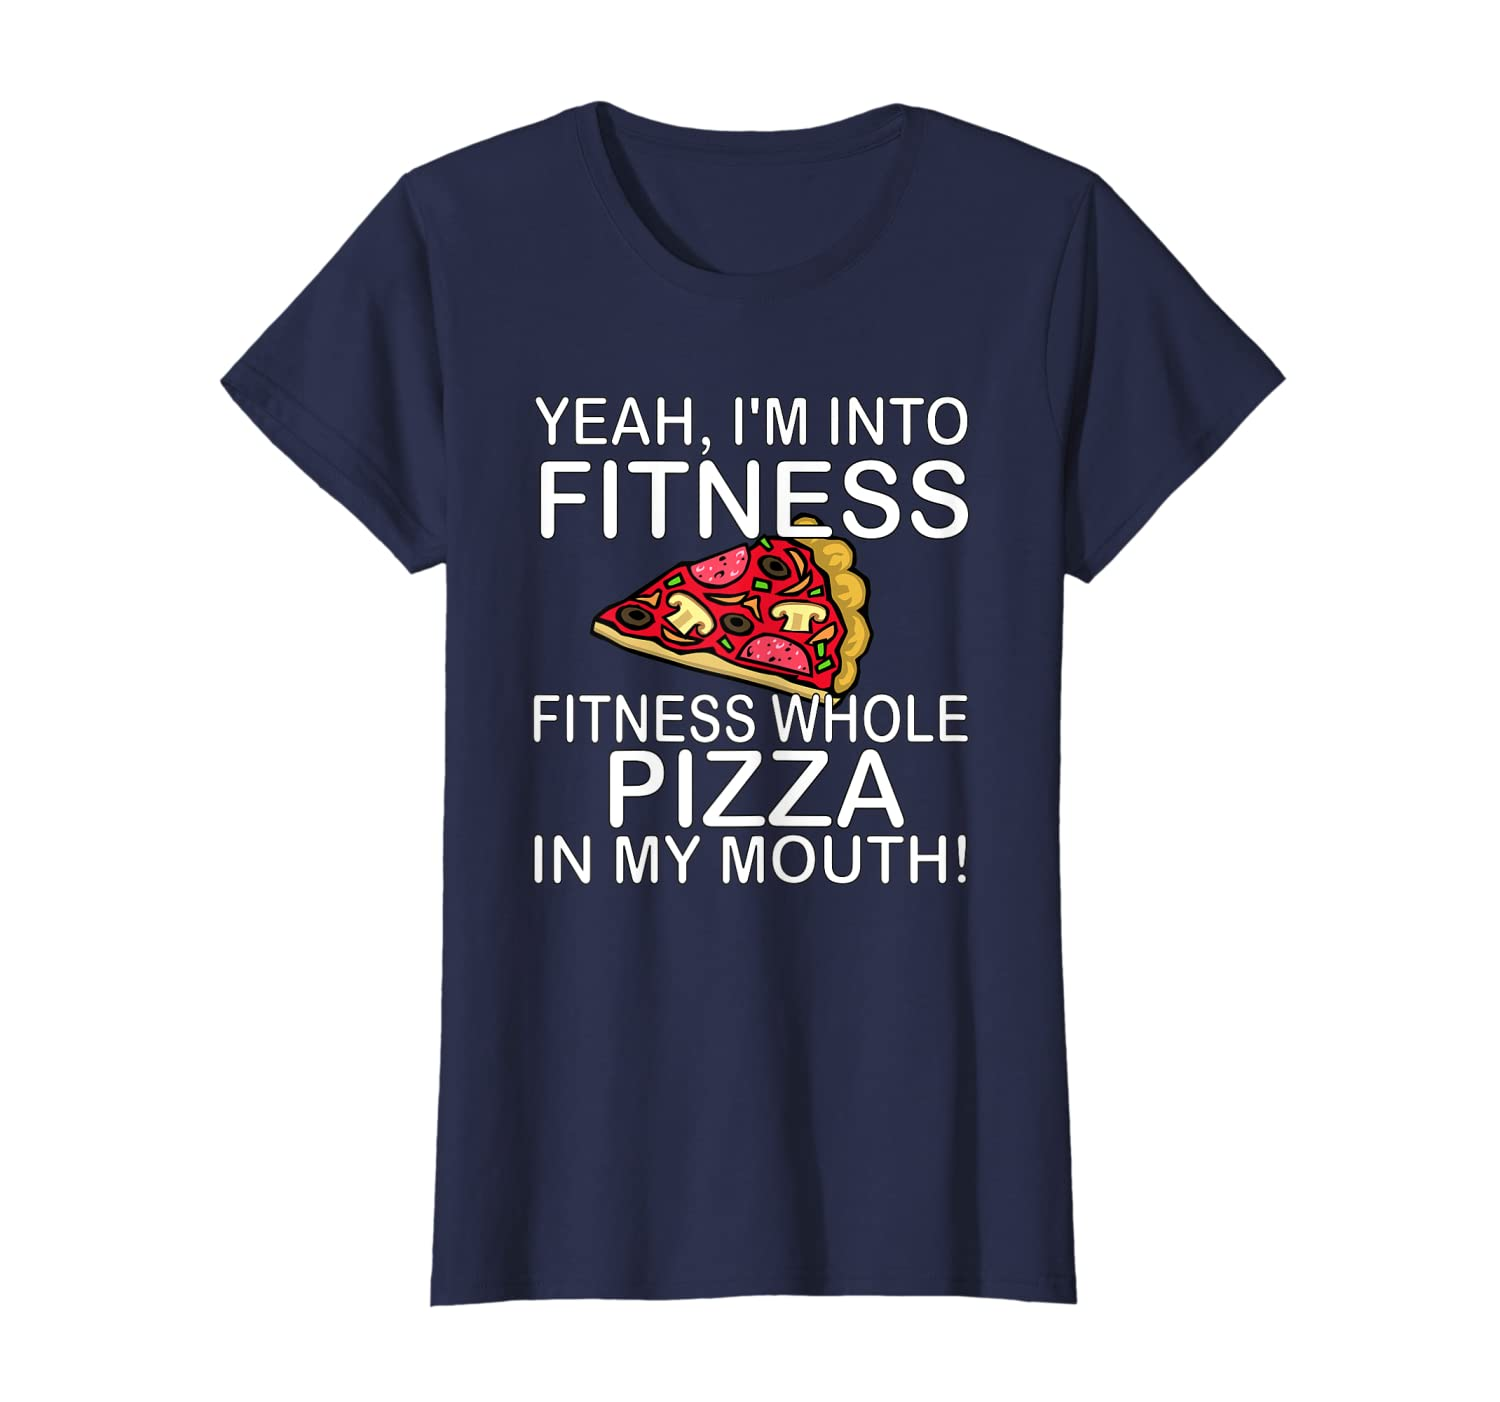 9526a89f1 Amazon.com: Yeah I'm Into Fitness Whole Pizza In My Mouth Funny T Shirt:  Clothing